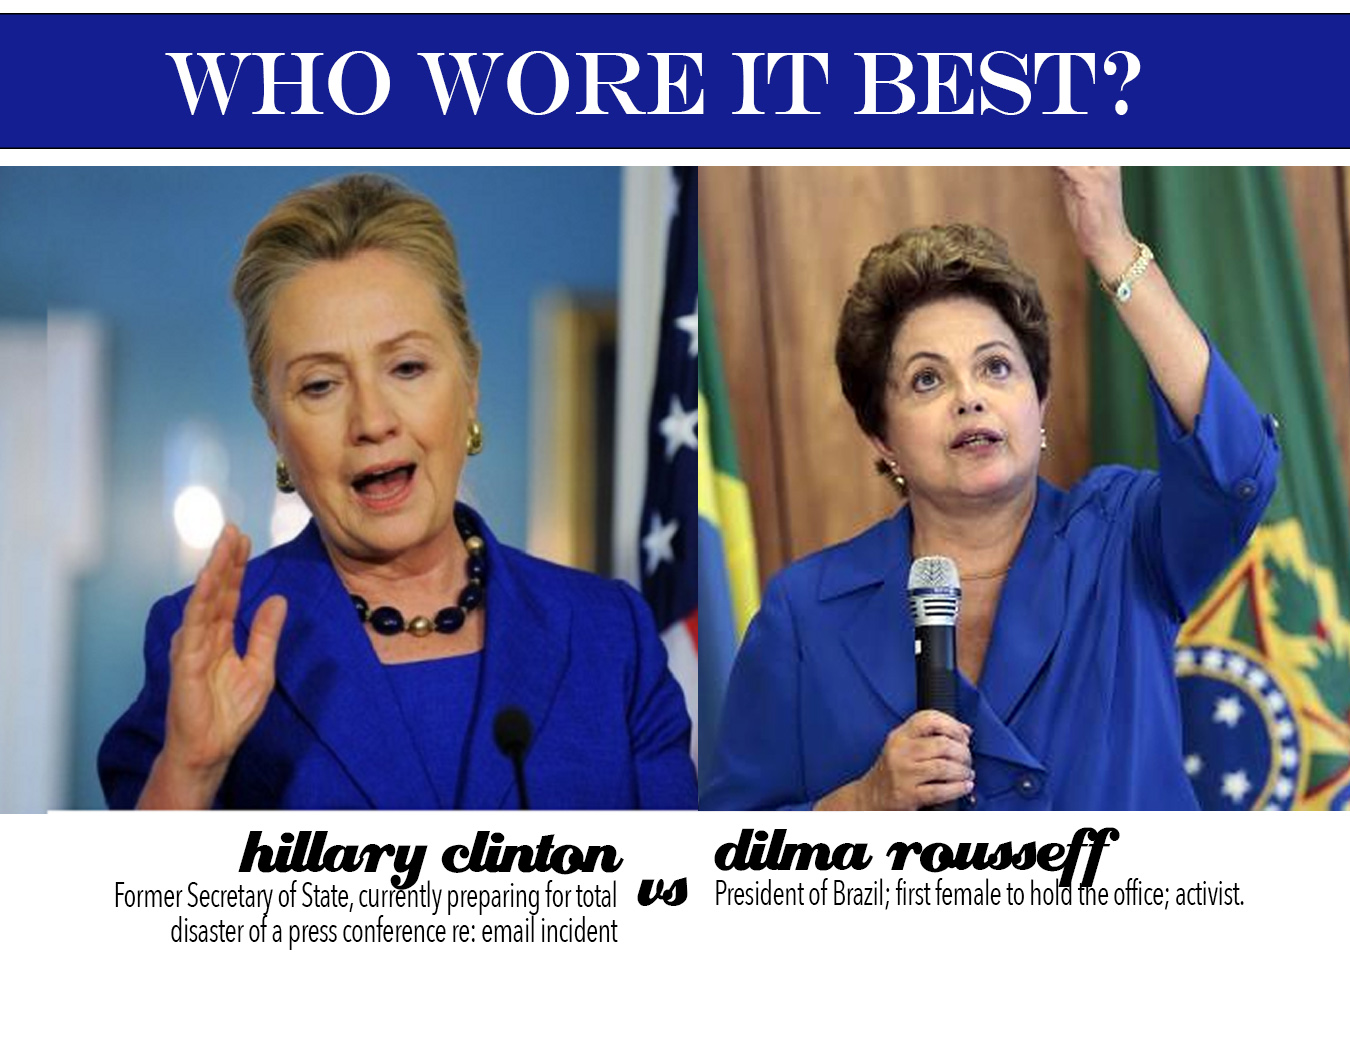 who wore it best hillary vs dilma